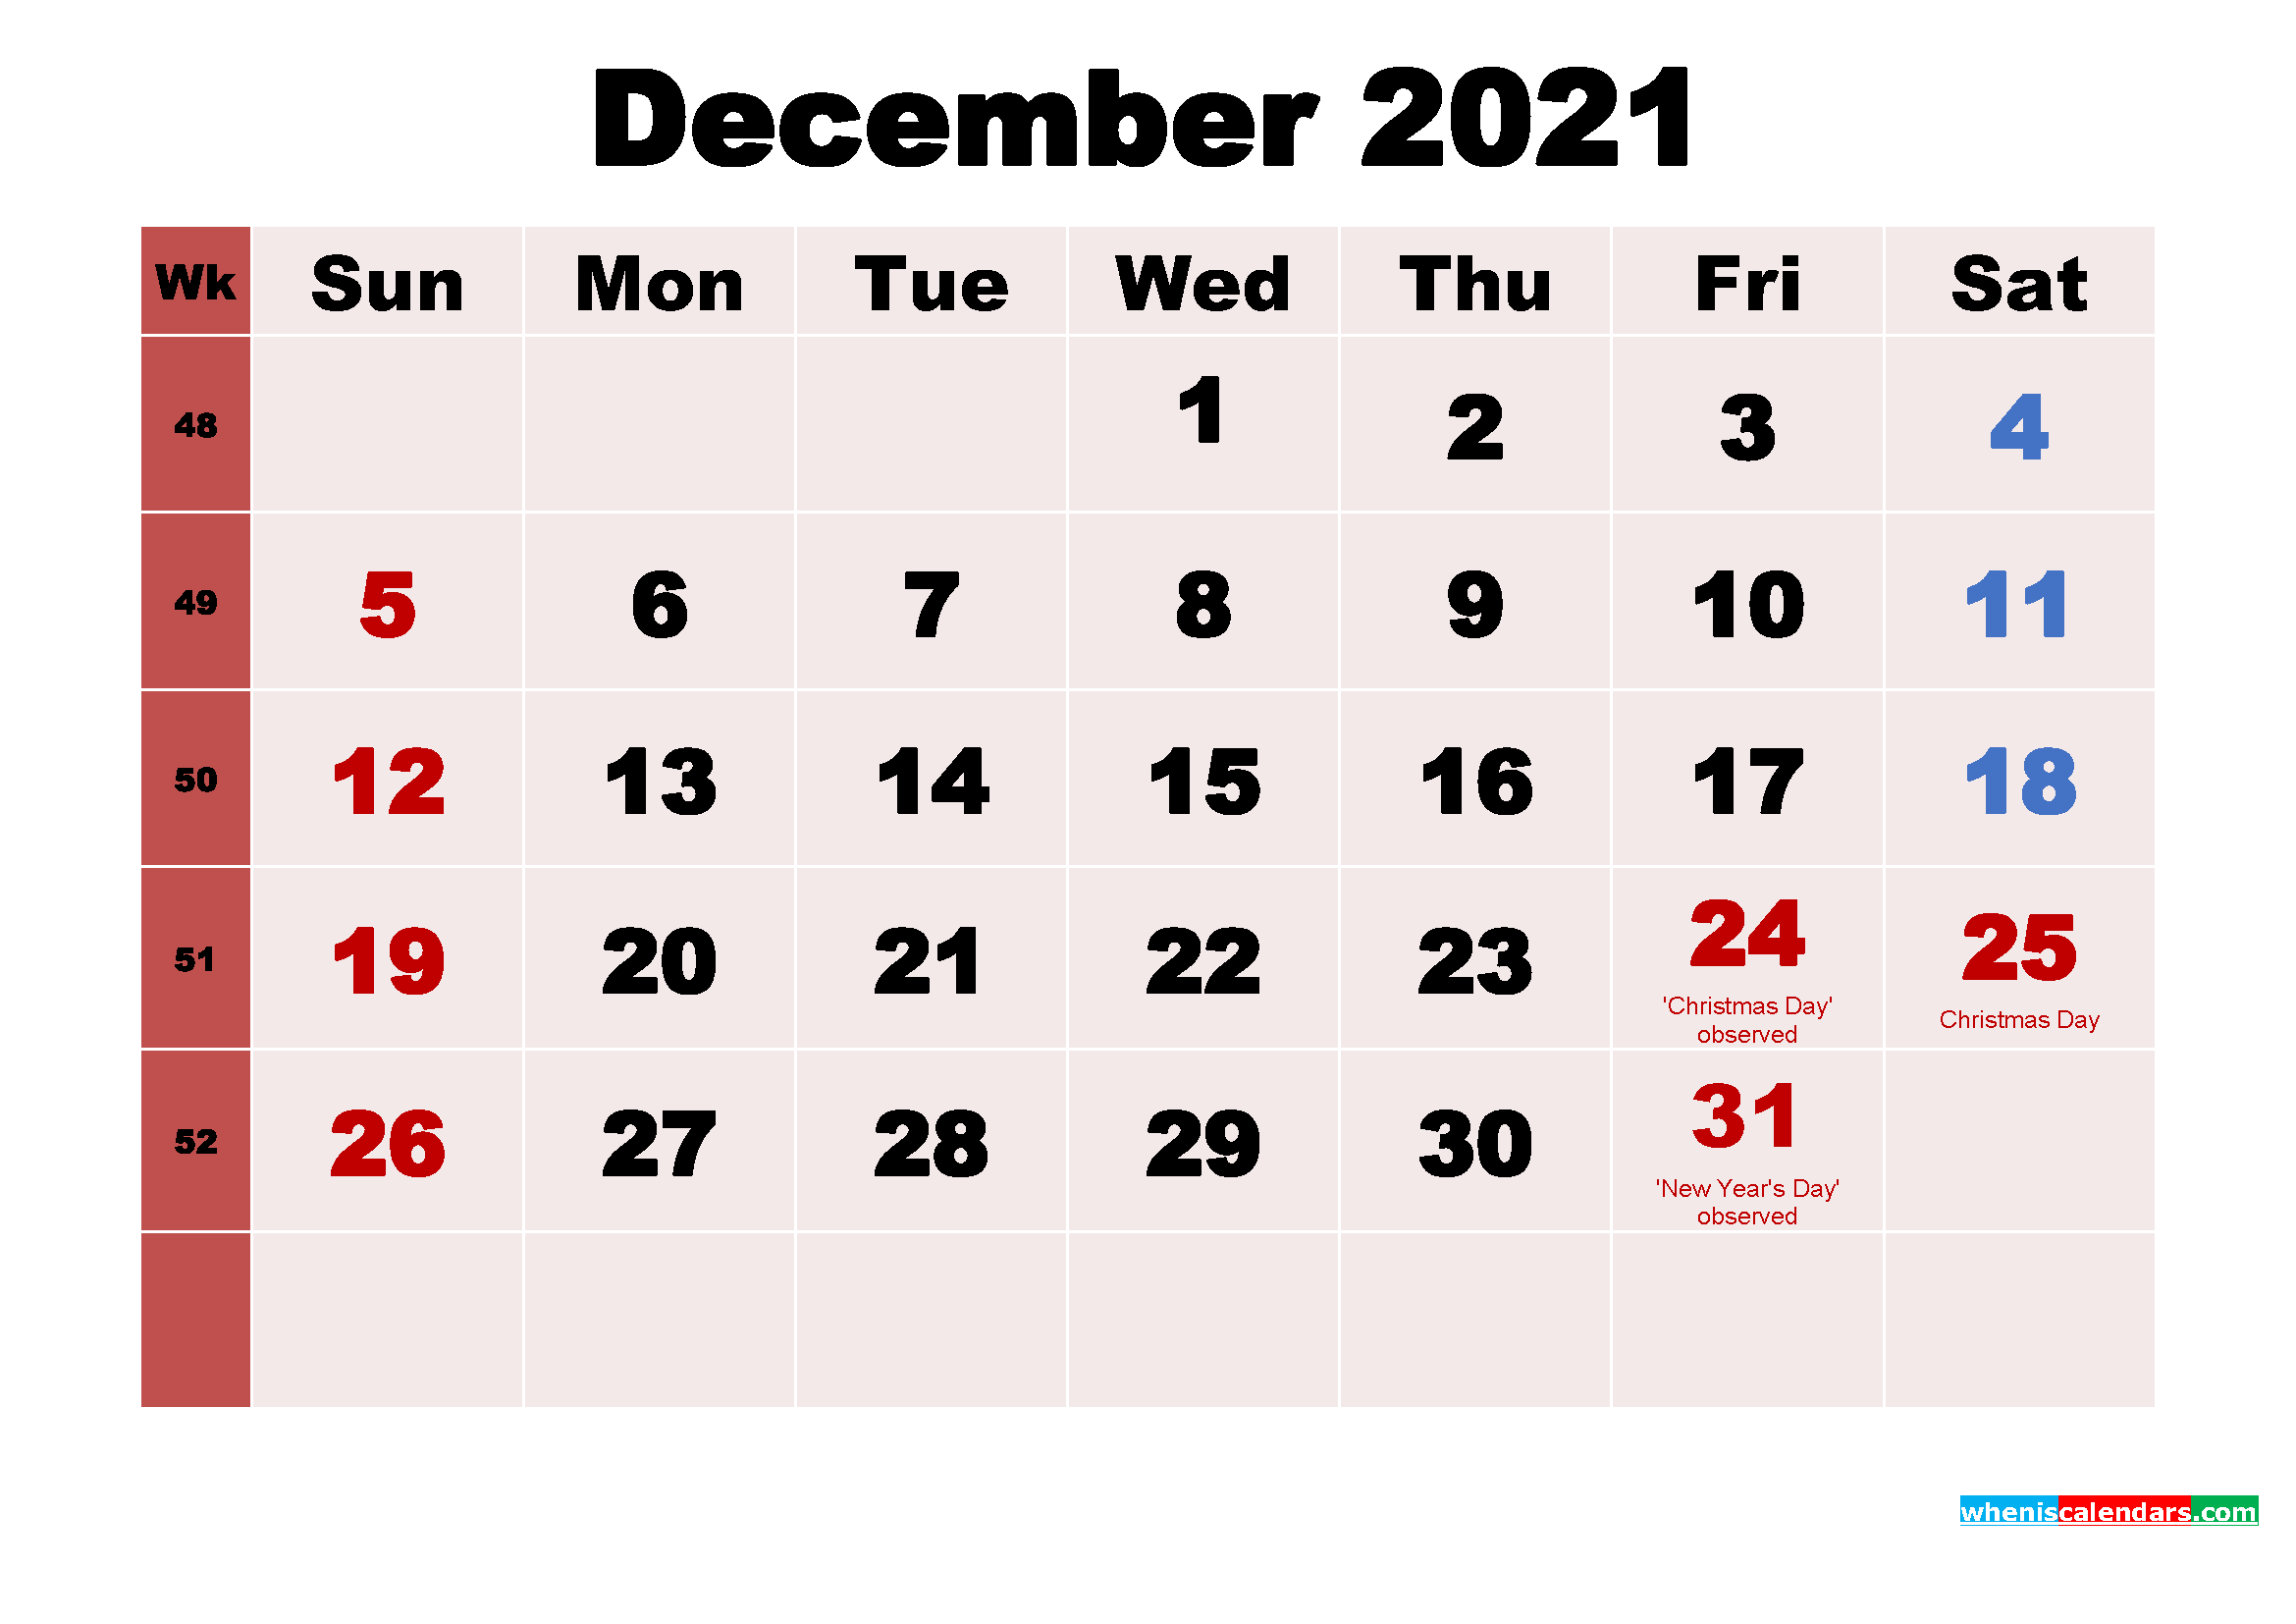 December 2021 Calendar Wallpaper Free Download